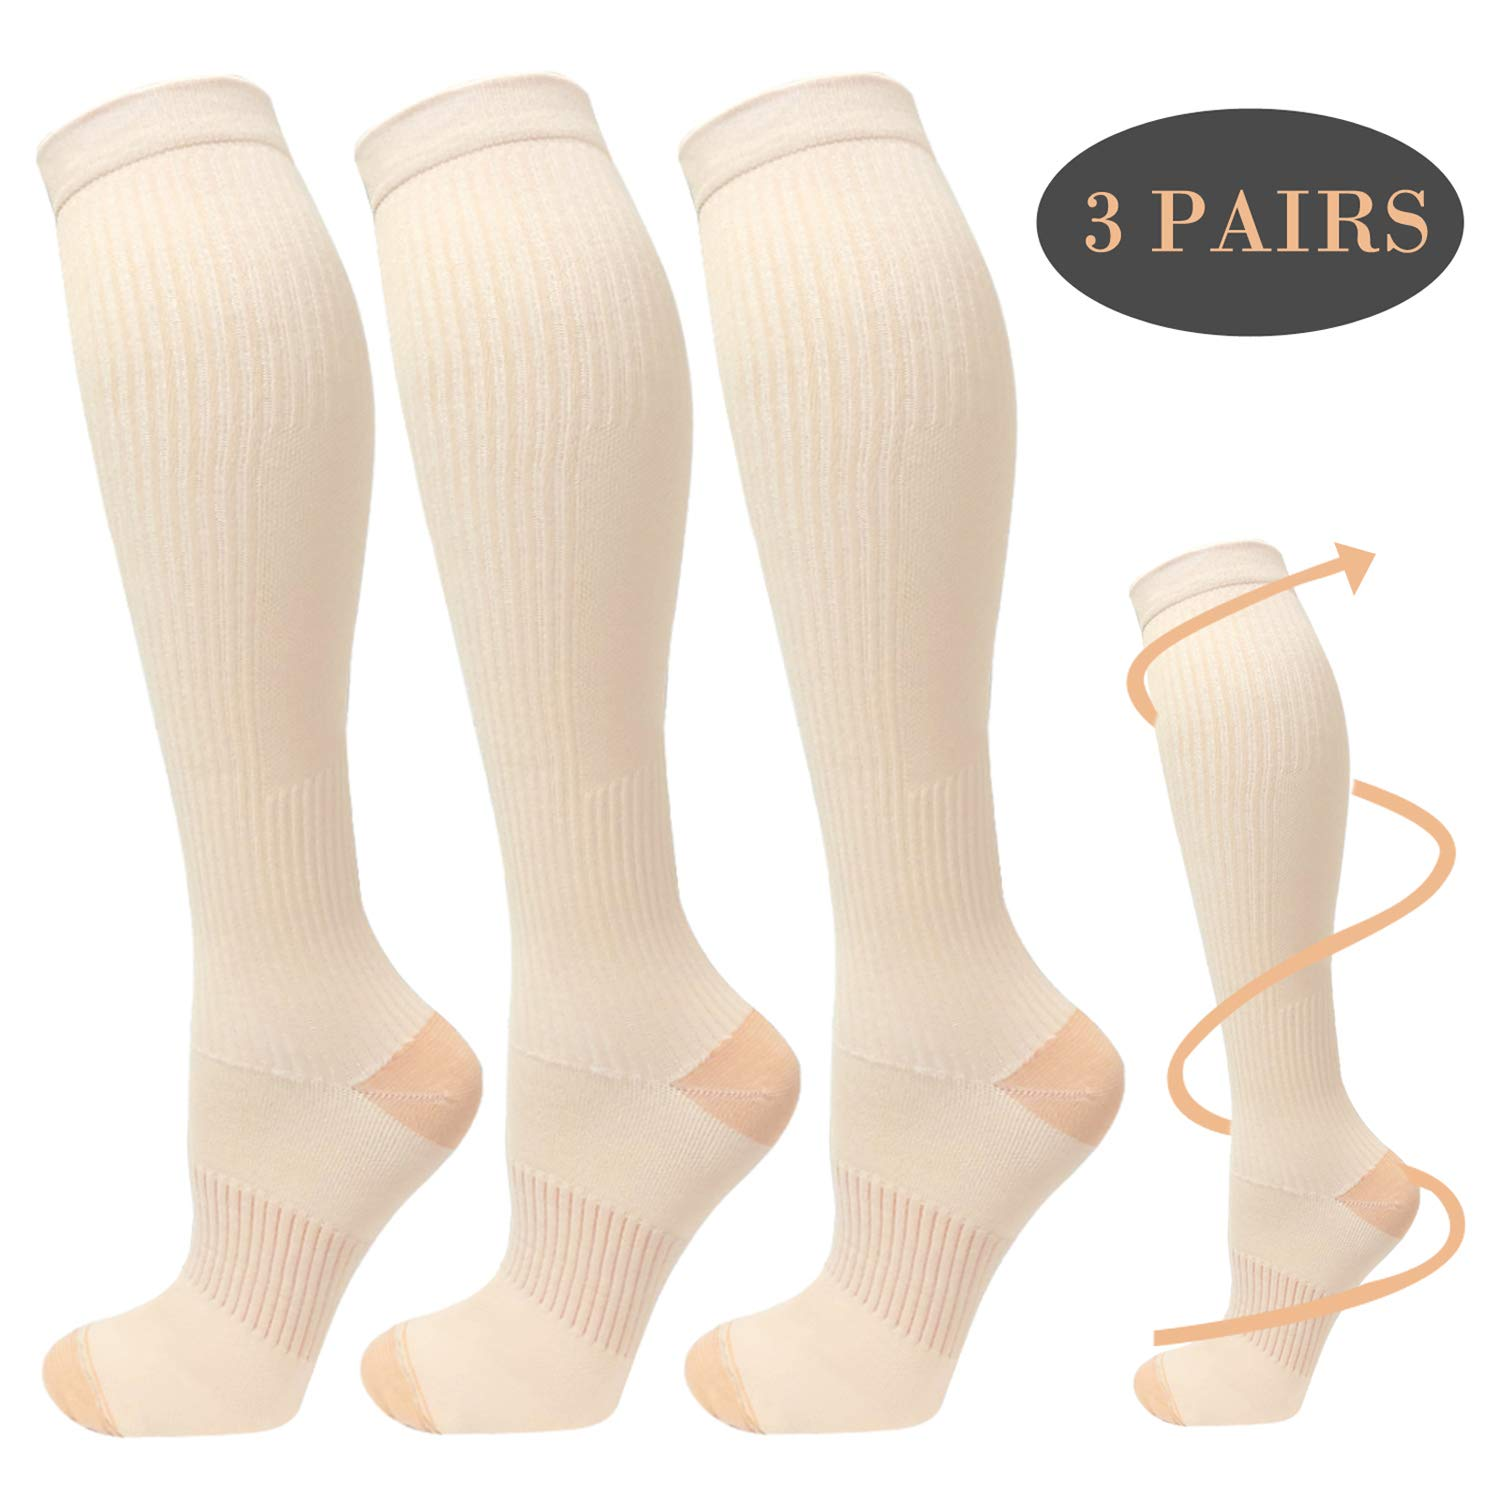 Copper Compression Socks For Men&Women -3 Pairs - Best Recovery Support Socks For Running,Athletic,Medical,Pregnancy and Travel -15-20mmHg (Nude, S/M)